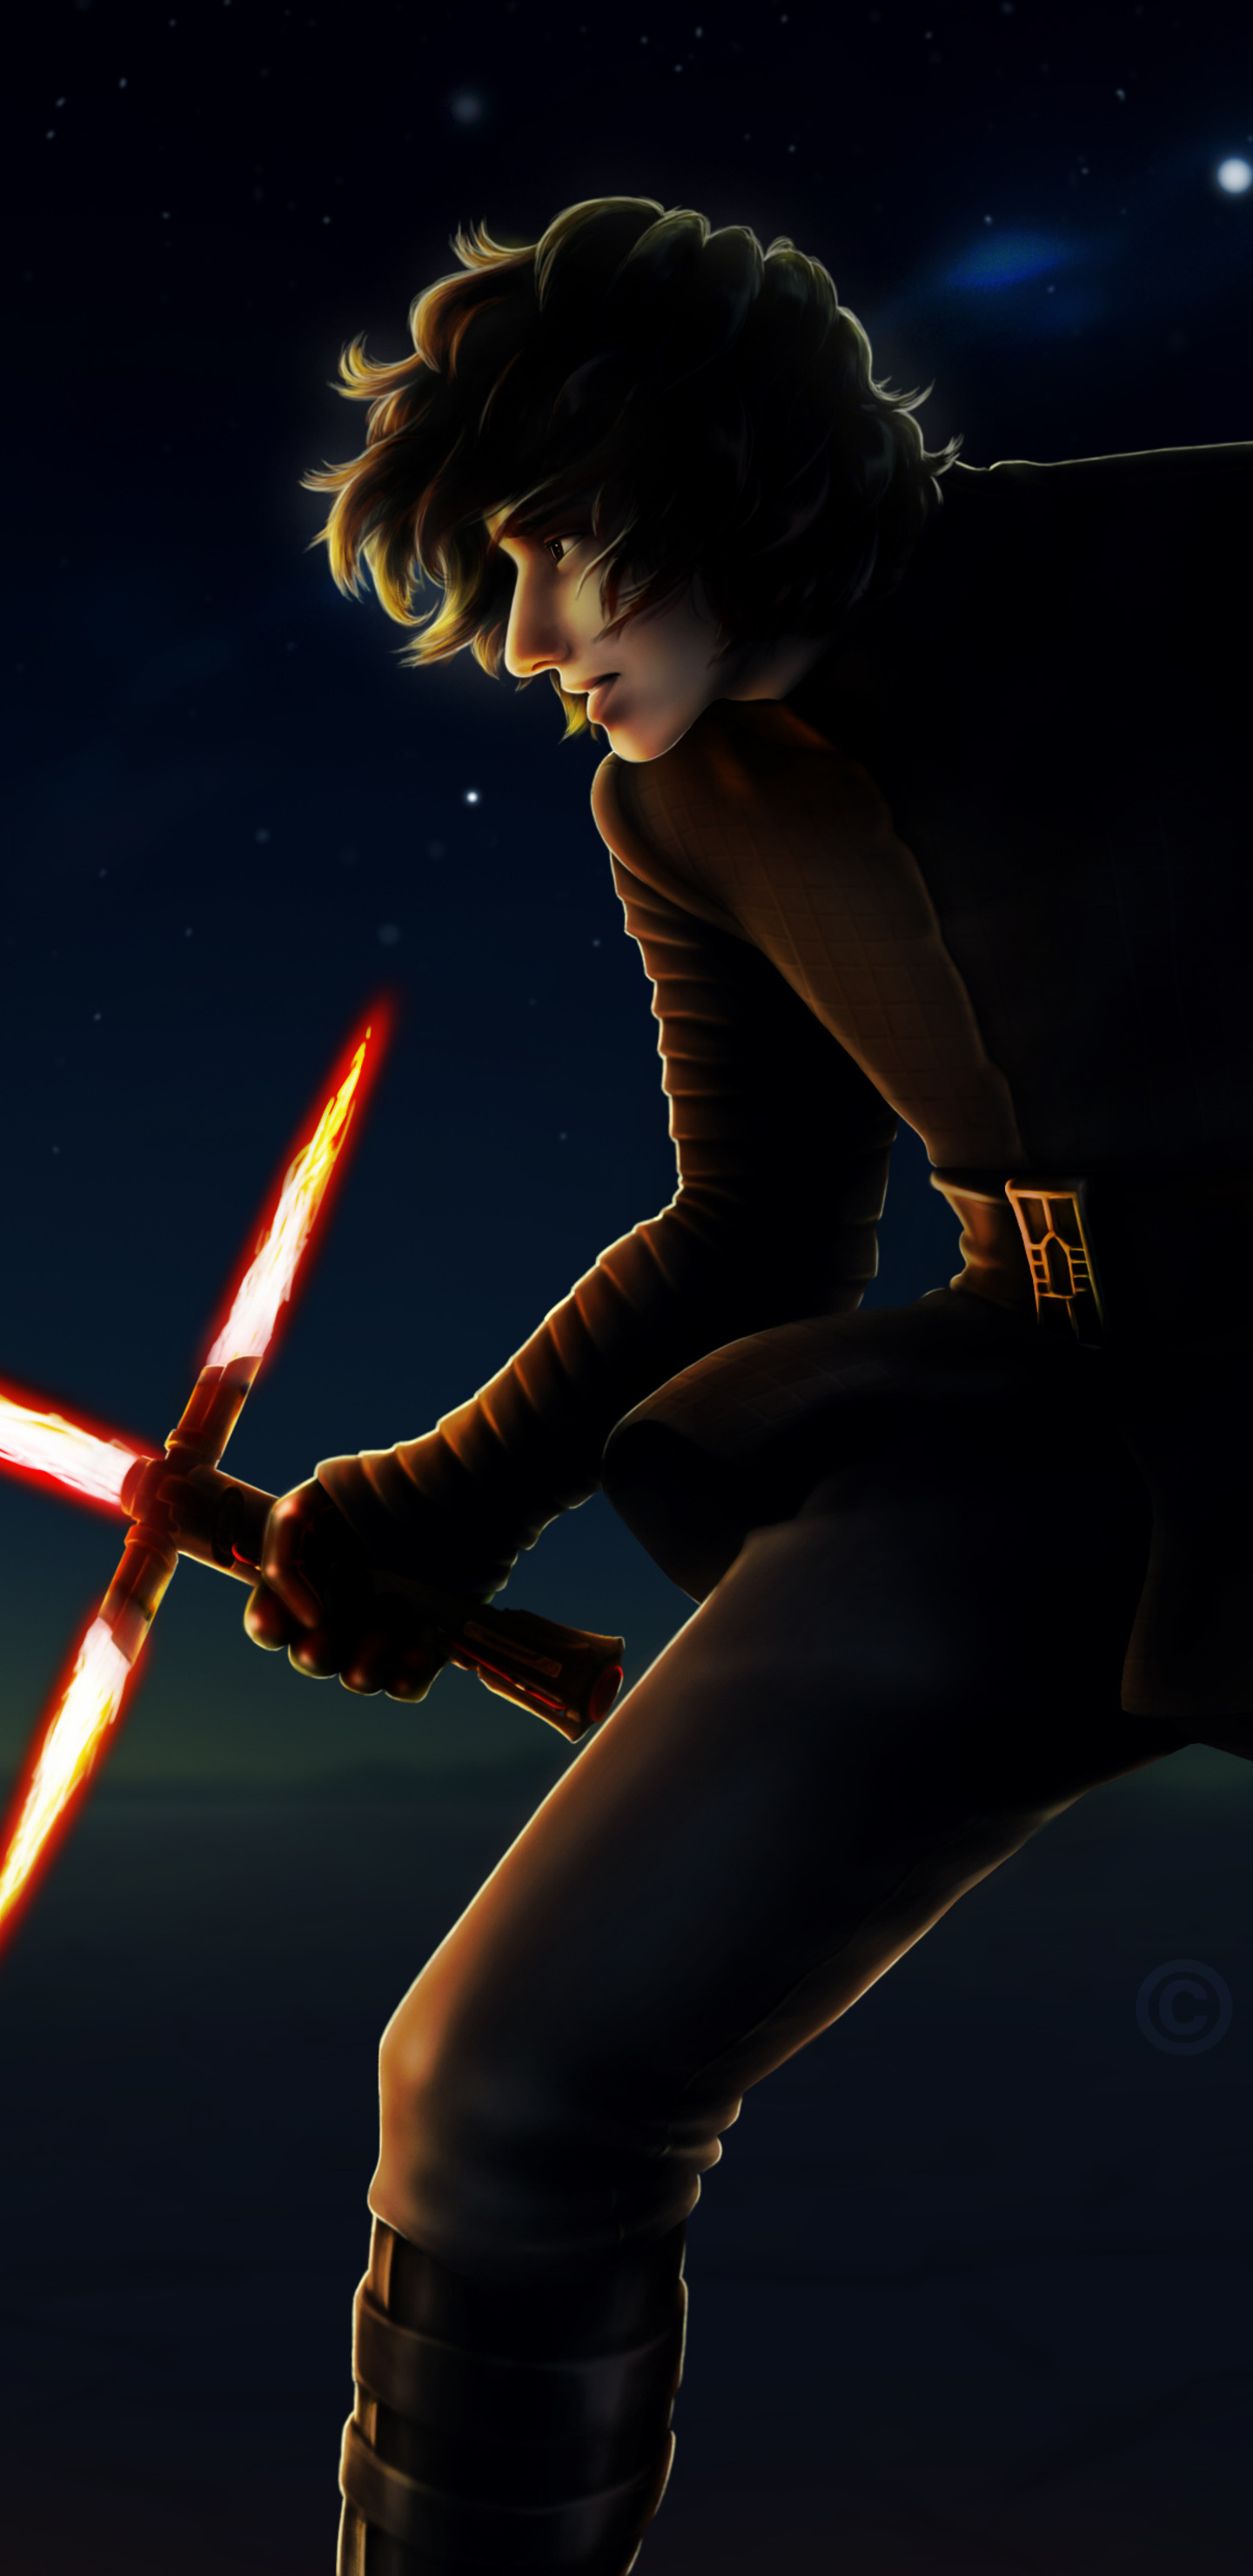 kylo-ren-artwork-4k-85.jpg